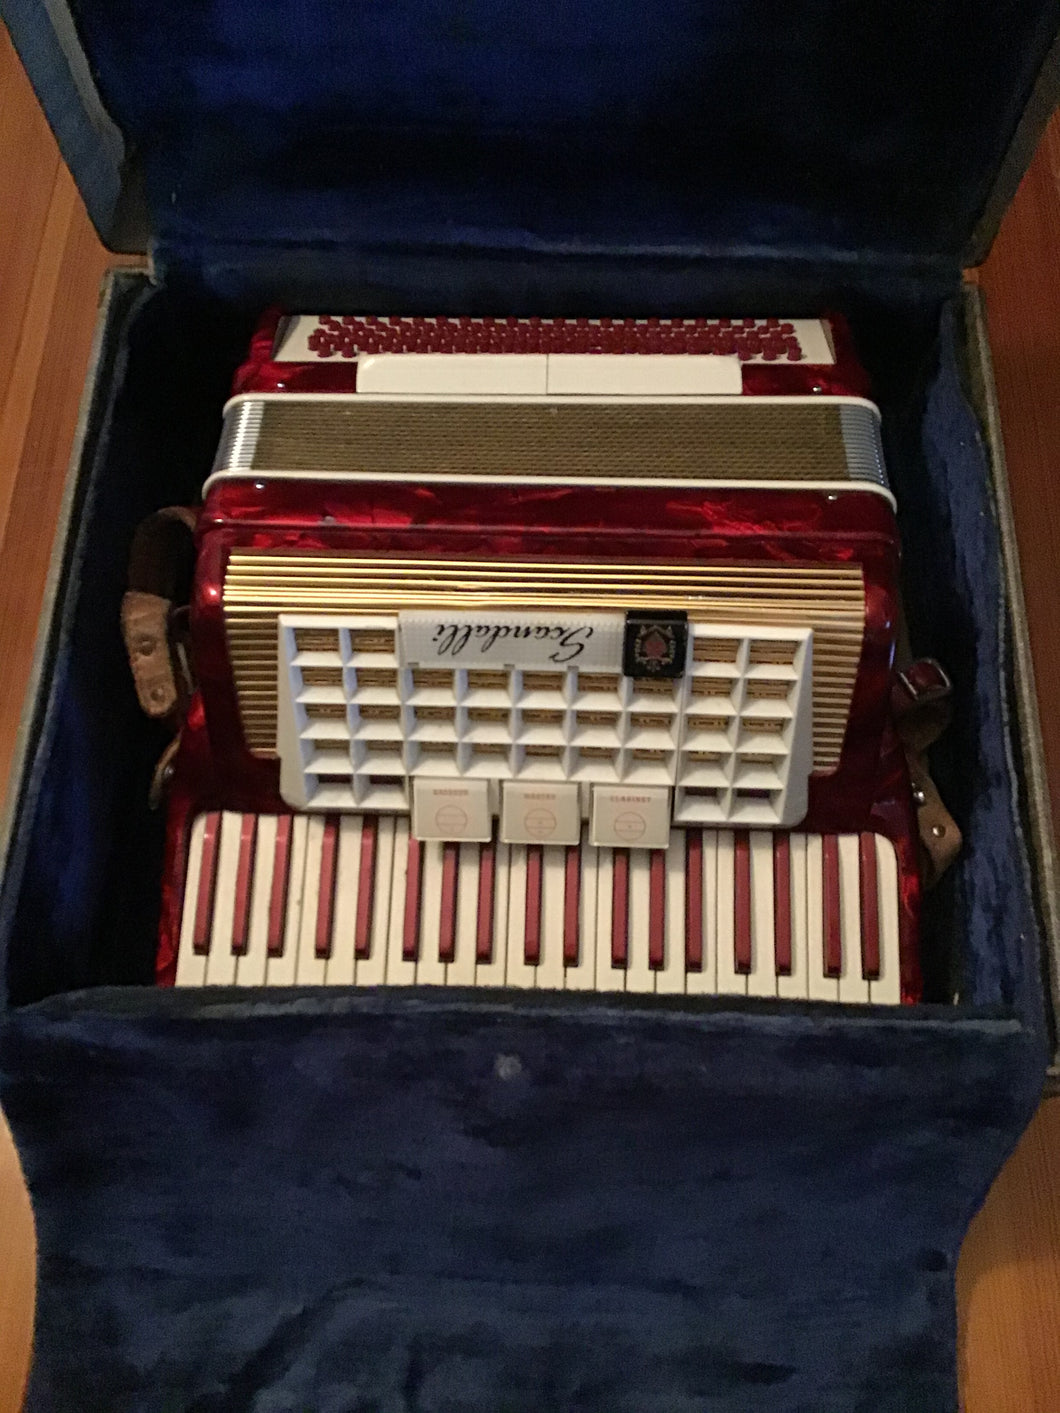 Scandalli of Italy Red Pearlized Accordion in Case